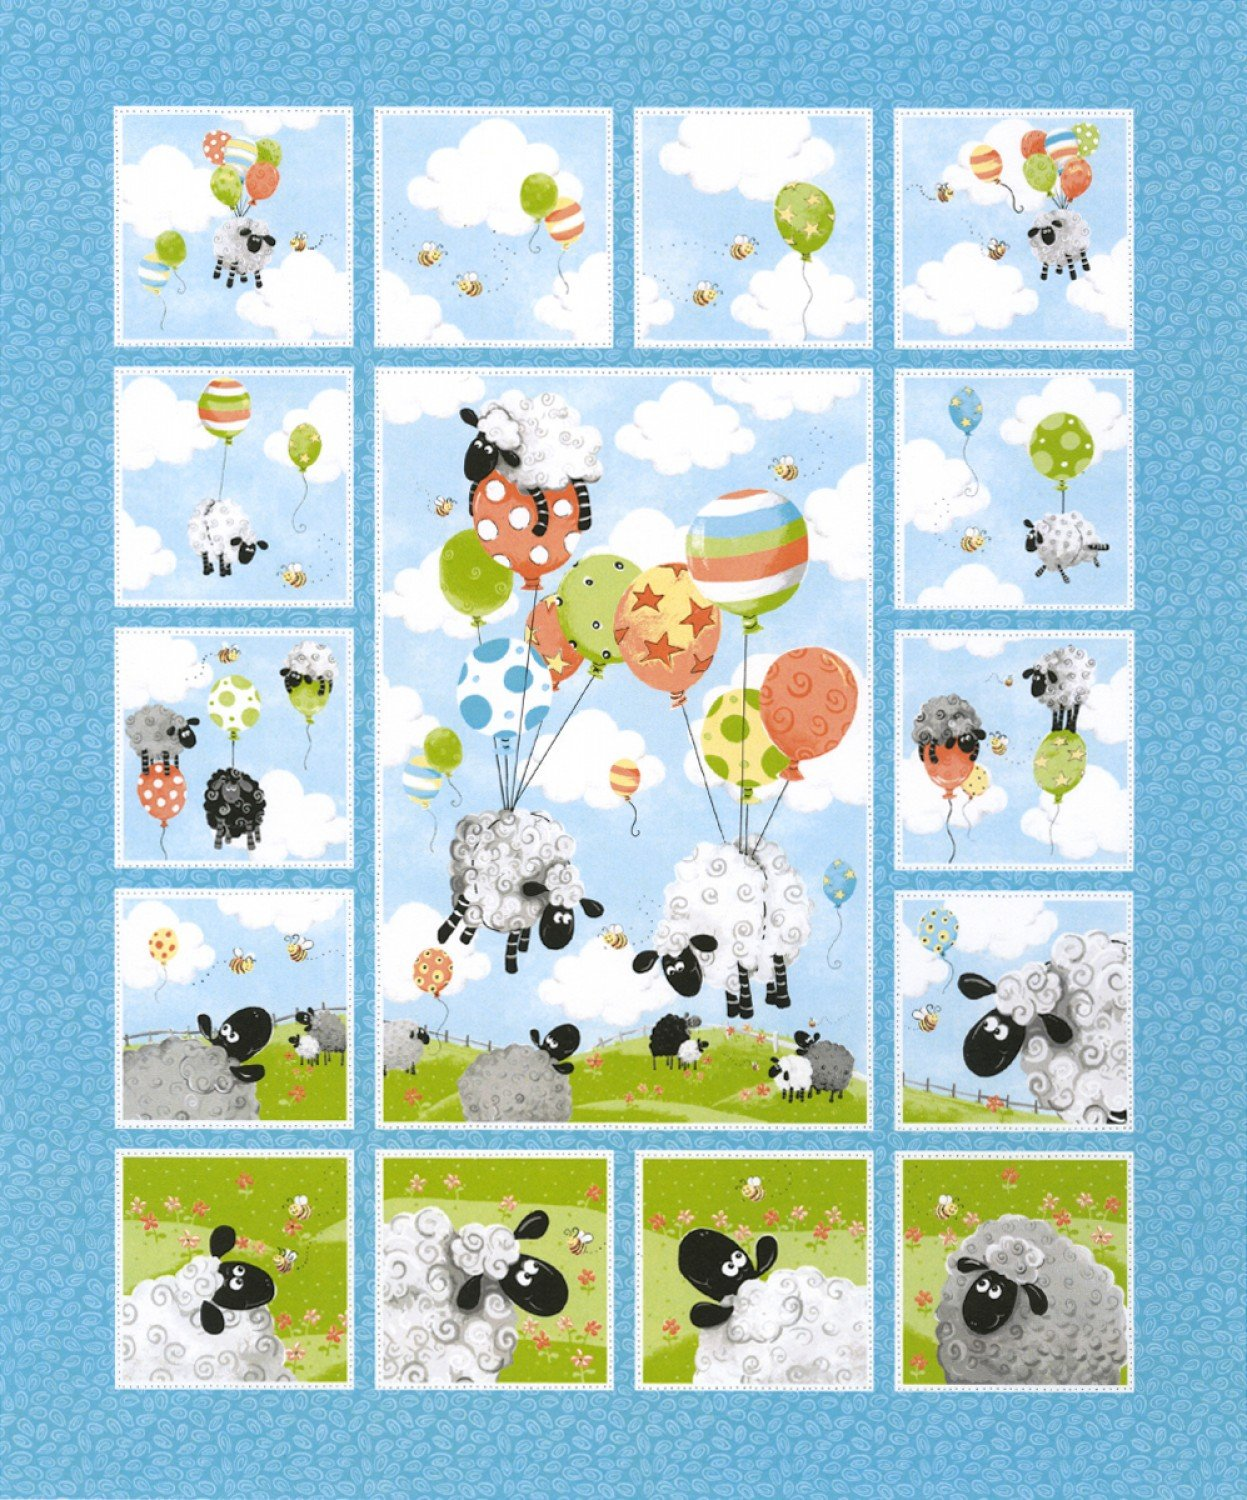 Children's Fabric Panels Lewes Balloons from Susybee Fabrics 36 x 43 Inches